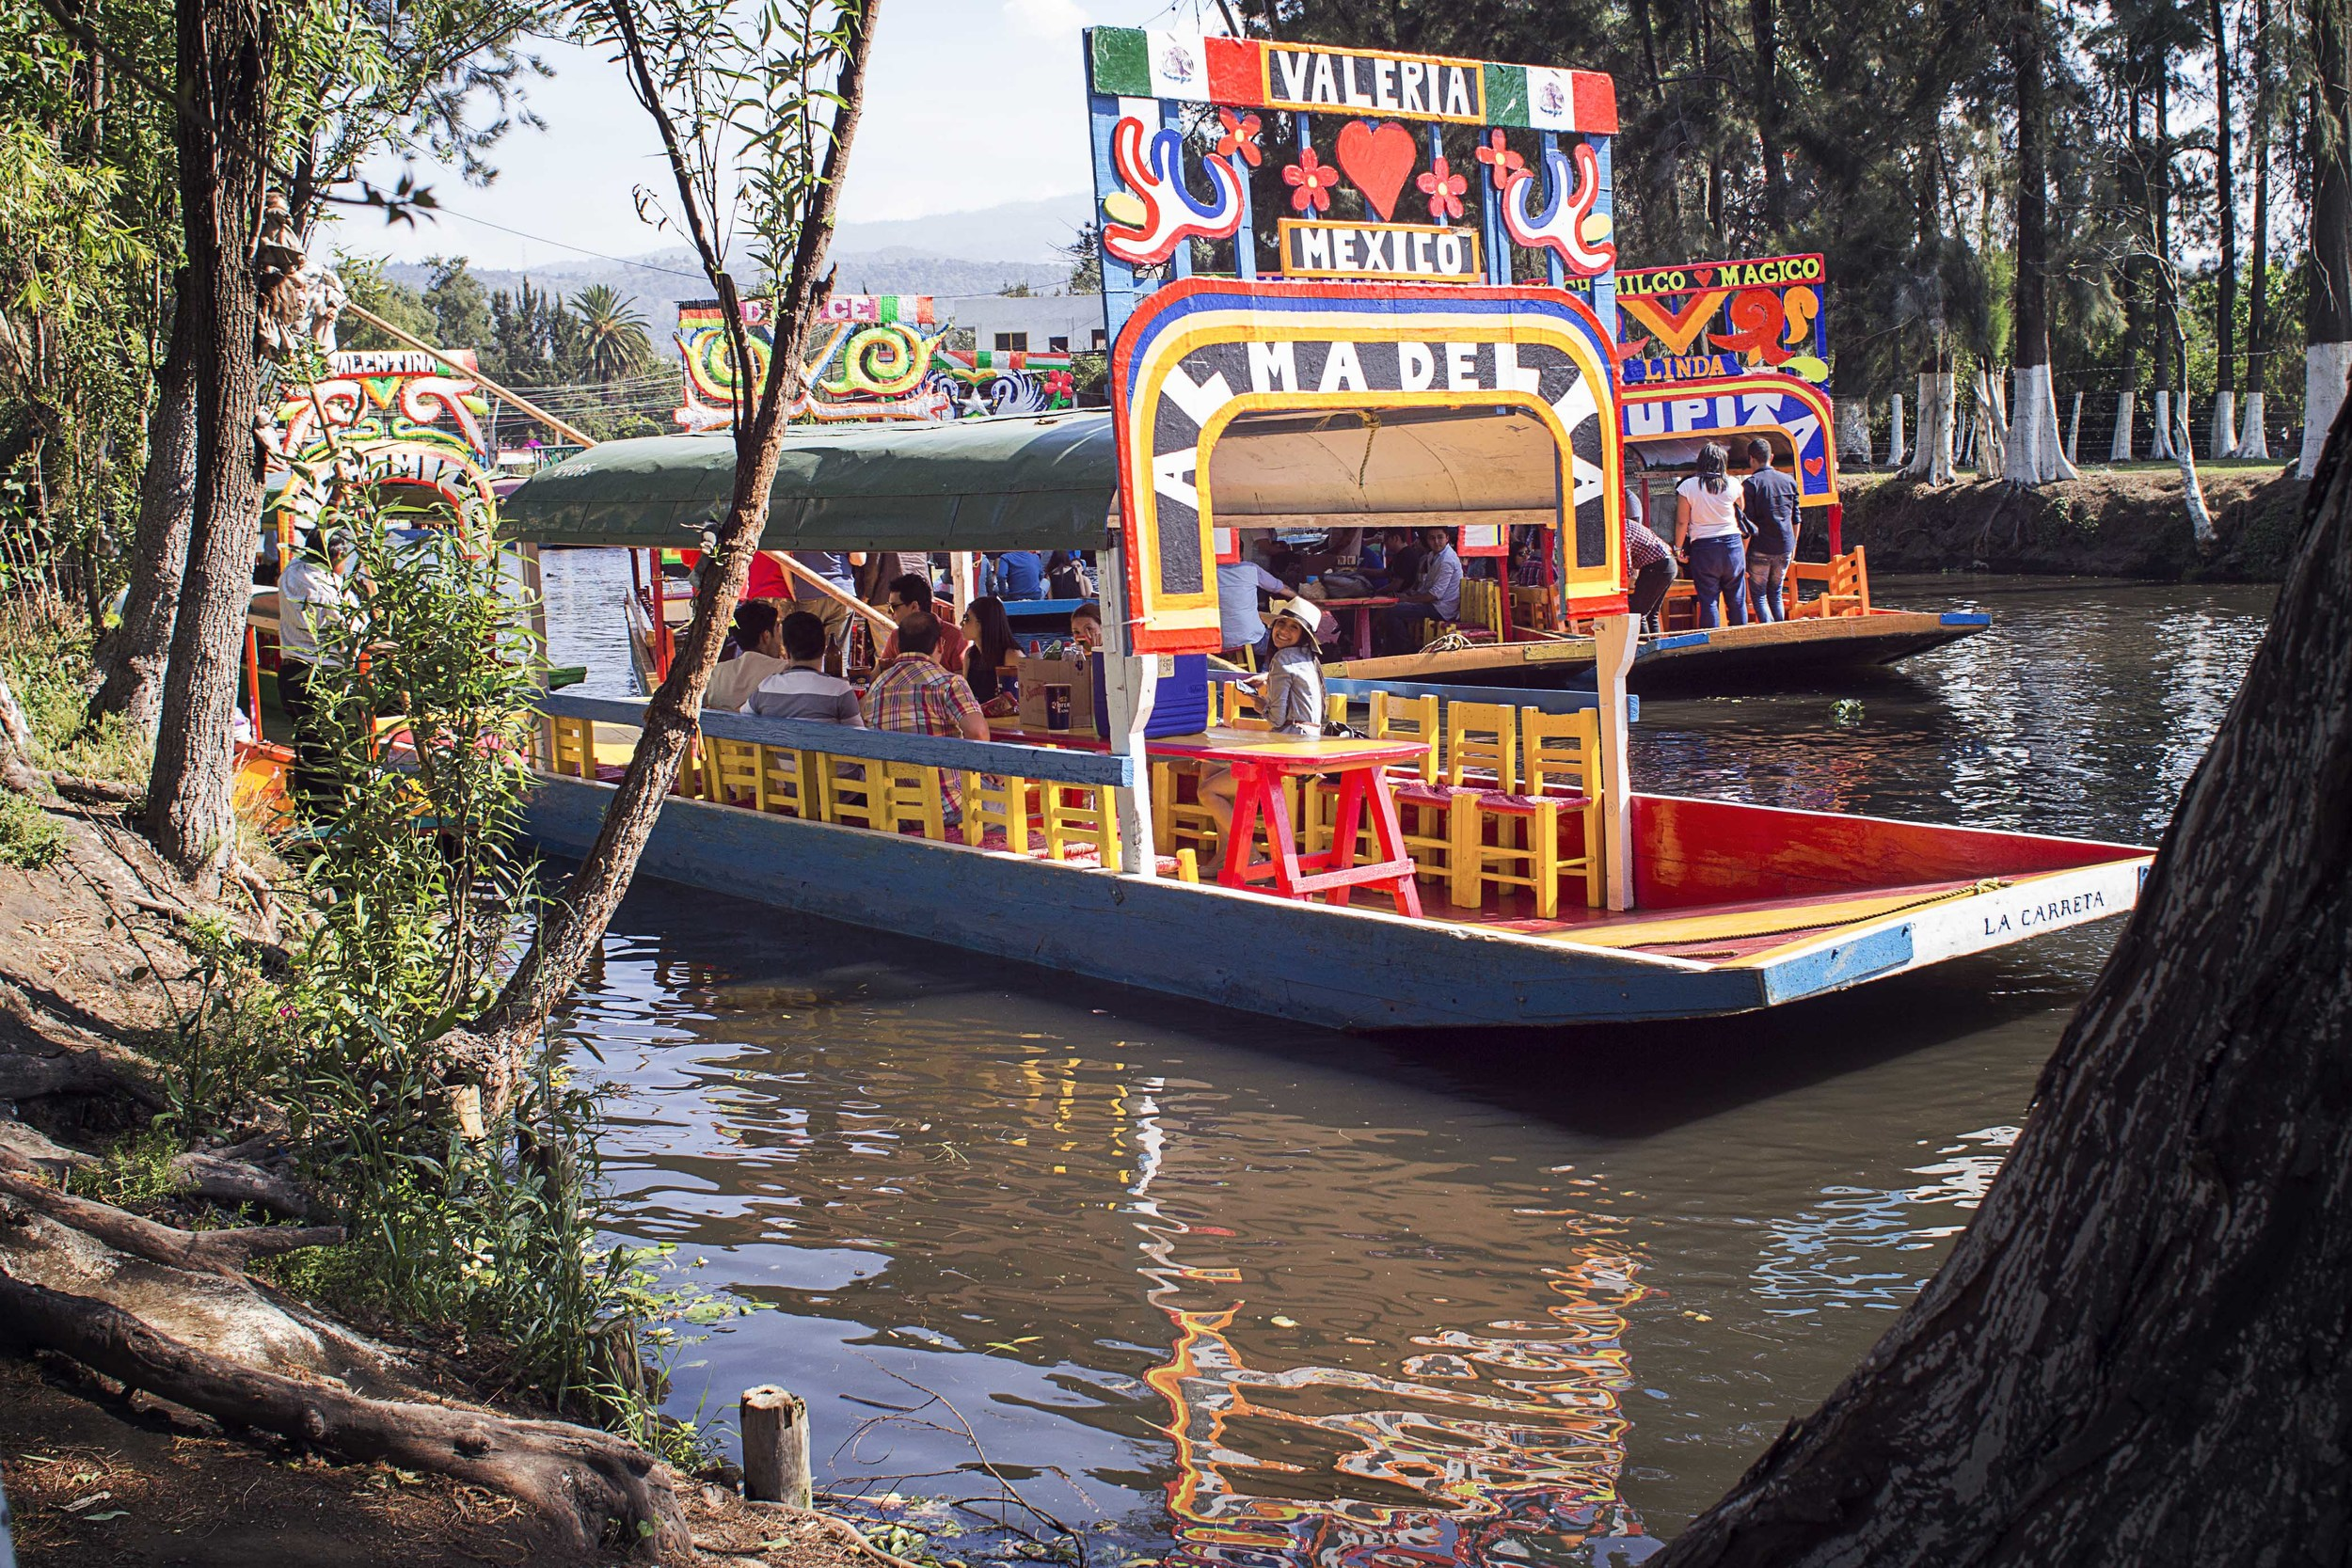 Day 85 - Xochimilco, Mexico   The Venice of Mexico.  Trajineras move around what is left of Lake Texoco where Tenochitlan and modern day Mexico City resides.  You can purchase food, beer, pulque, mariachi music, flowers and pretty much anything you can think of for a good party or romantic afternoon.